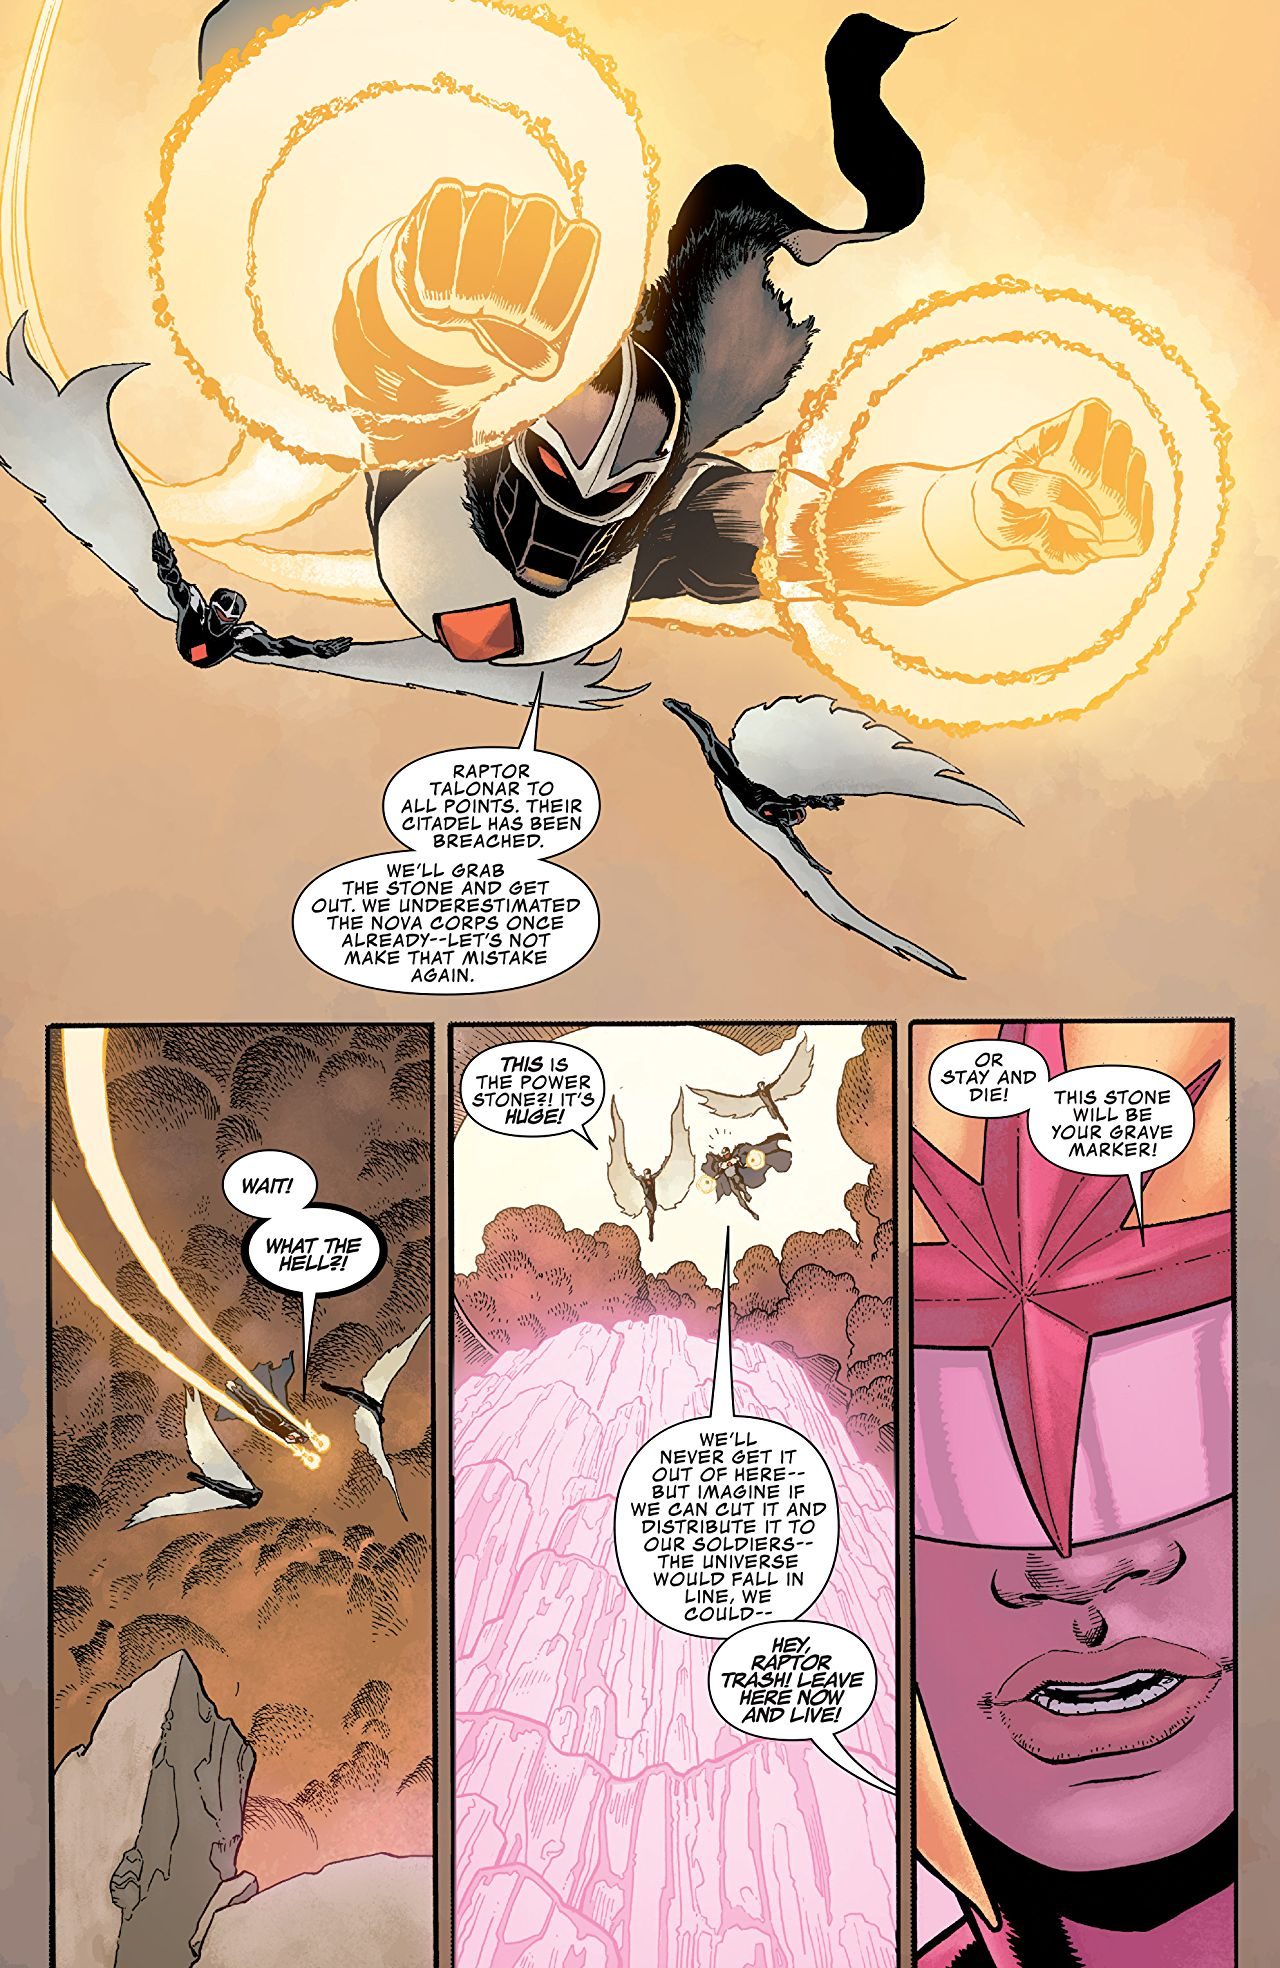 Infinity Countdown #1 art by Aaron Kuder and Jordie Bellaire